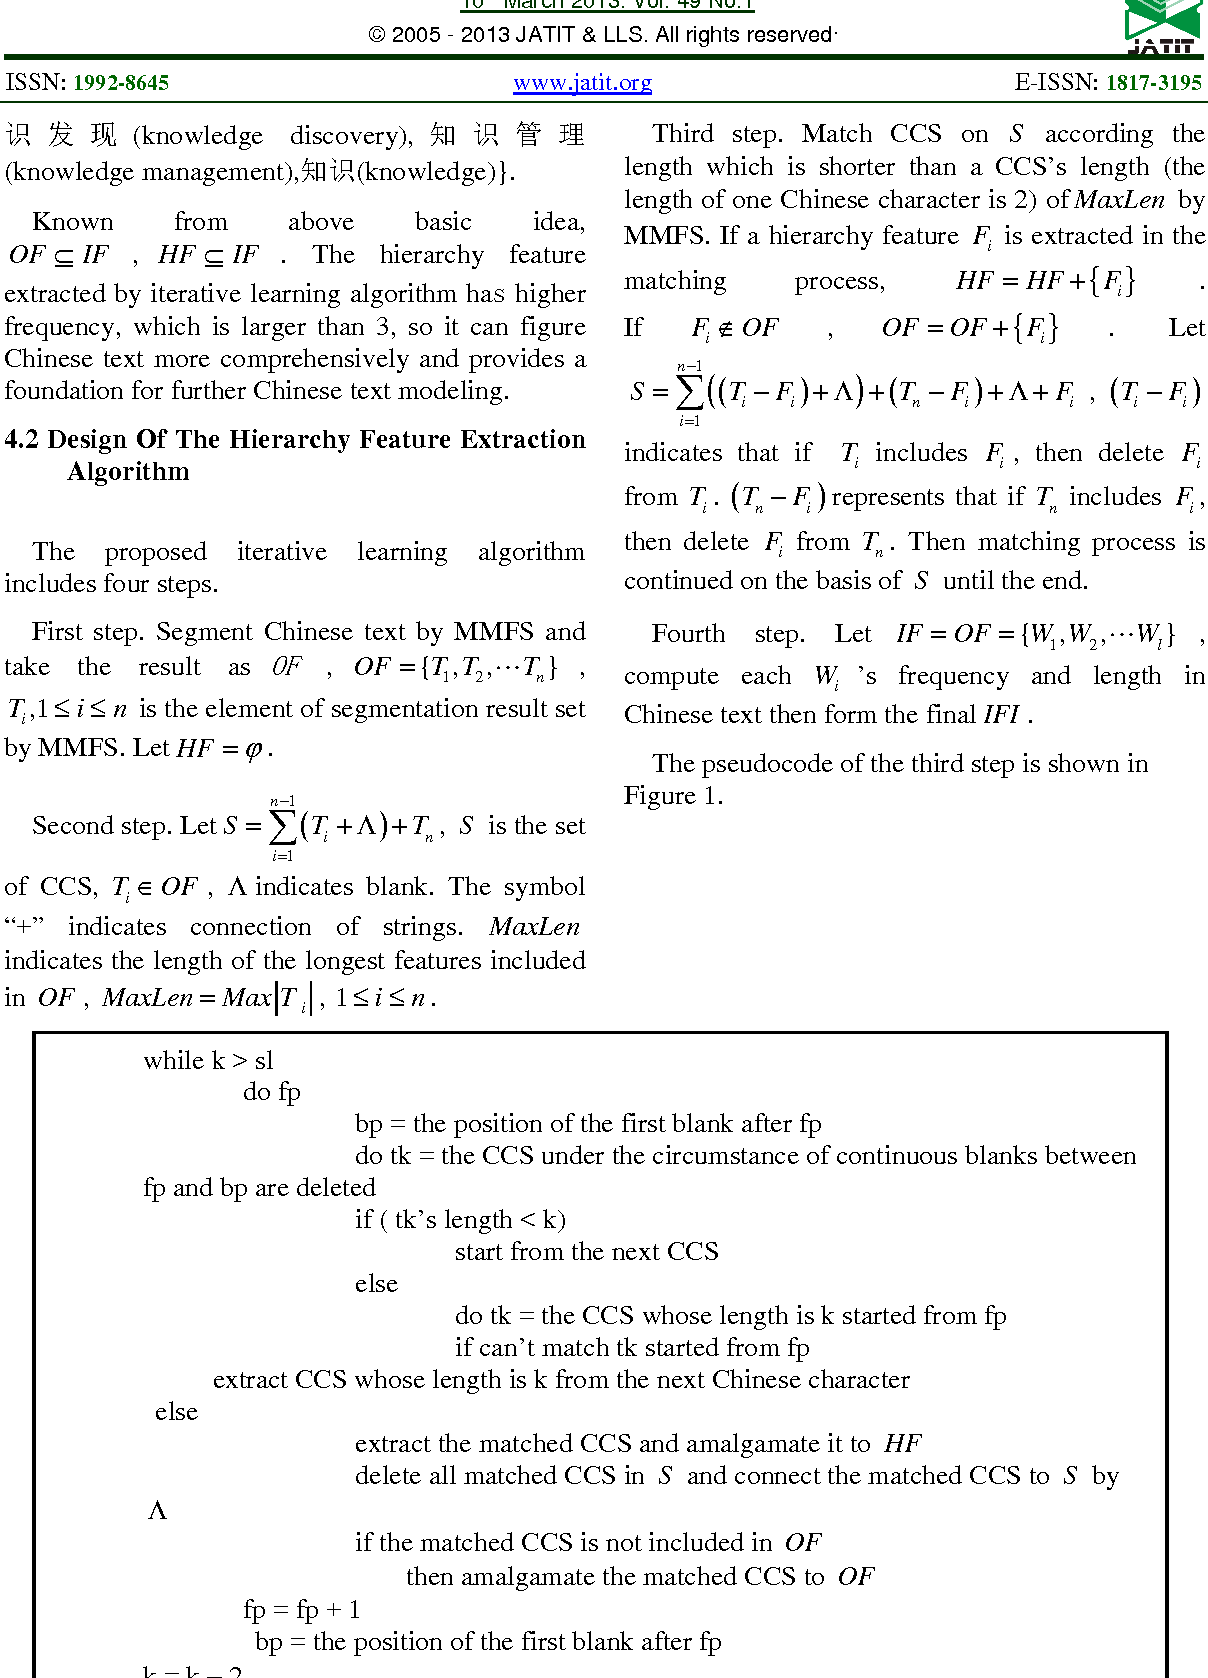 PDF] AN APPROACH BASED ON ITERATIVE LEARNING ALGORITHM FOR CHINESE